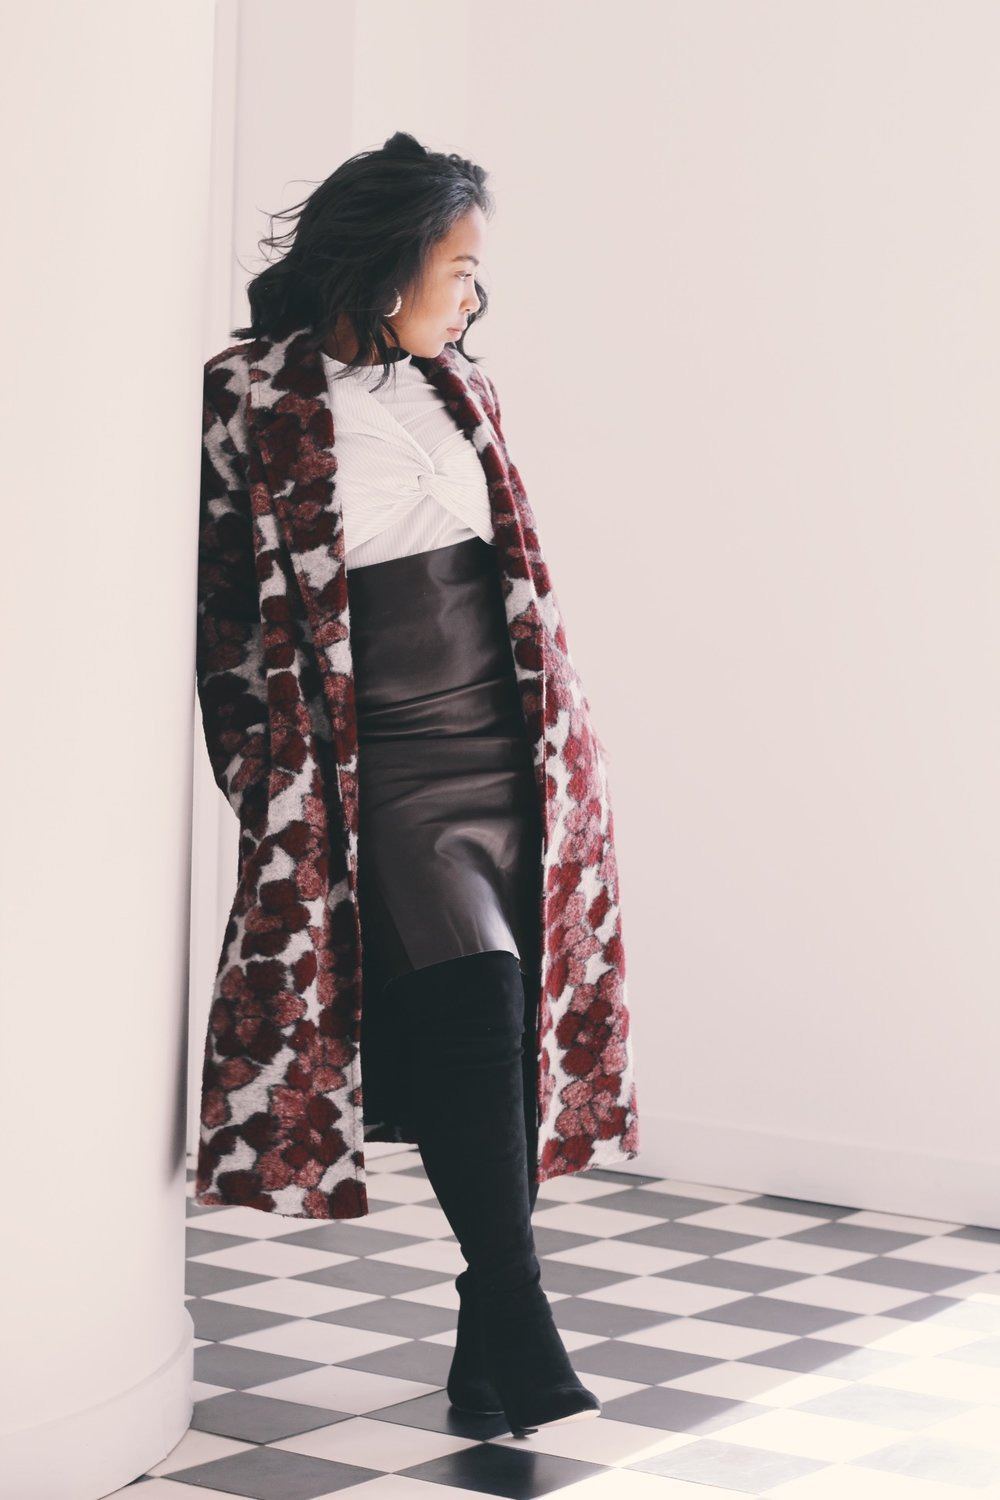 Durham-Hotel-Robinson-Style-rent-the-runway-hutch-floral-coat-milly-stripe-top-loft-leather-pencil-skirt-asos-over-the-knee-boot.JPG-2.JPG